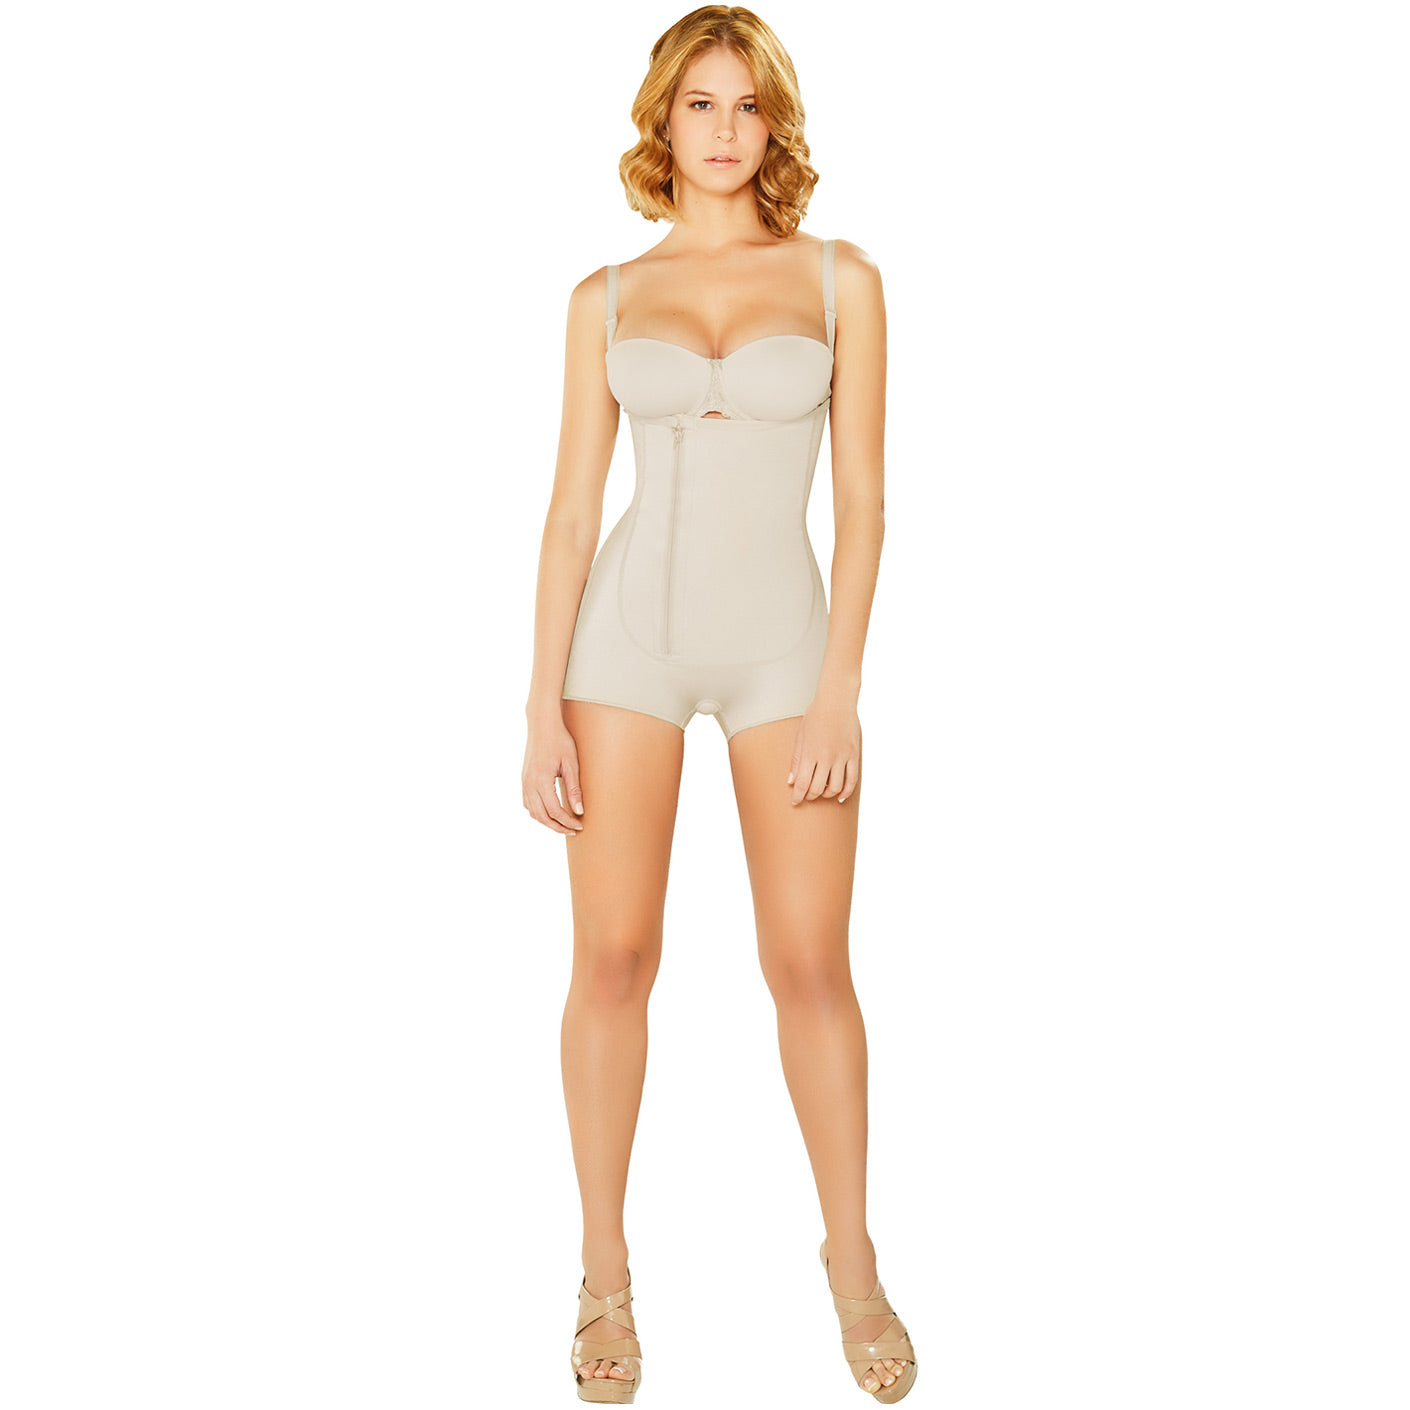 Fajas Diane & Geordi 2381 Colombiana Braless Boyshort